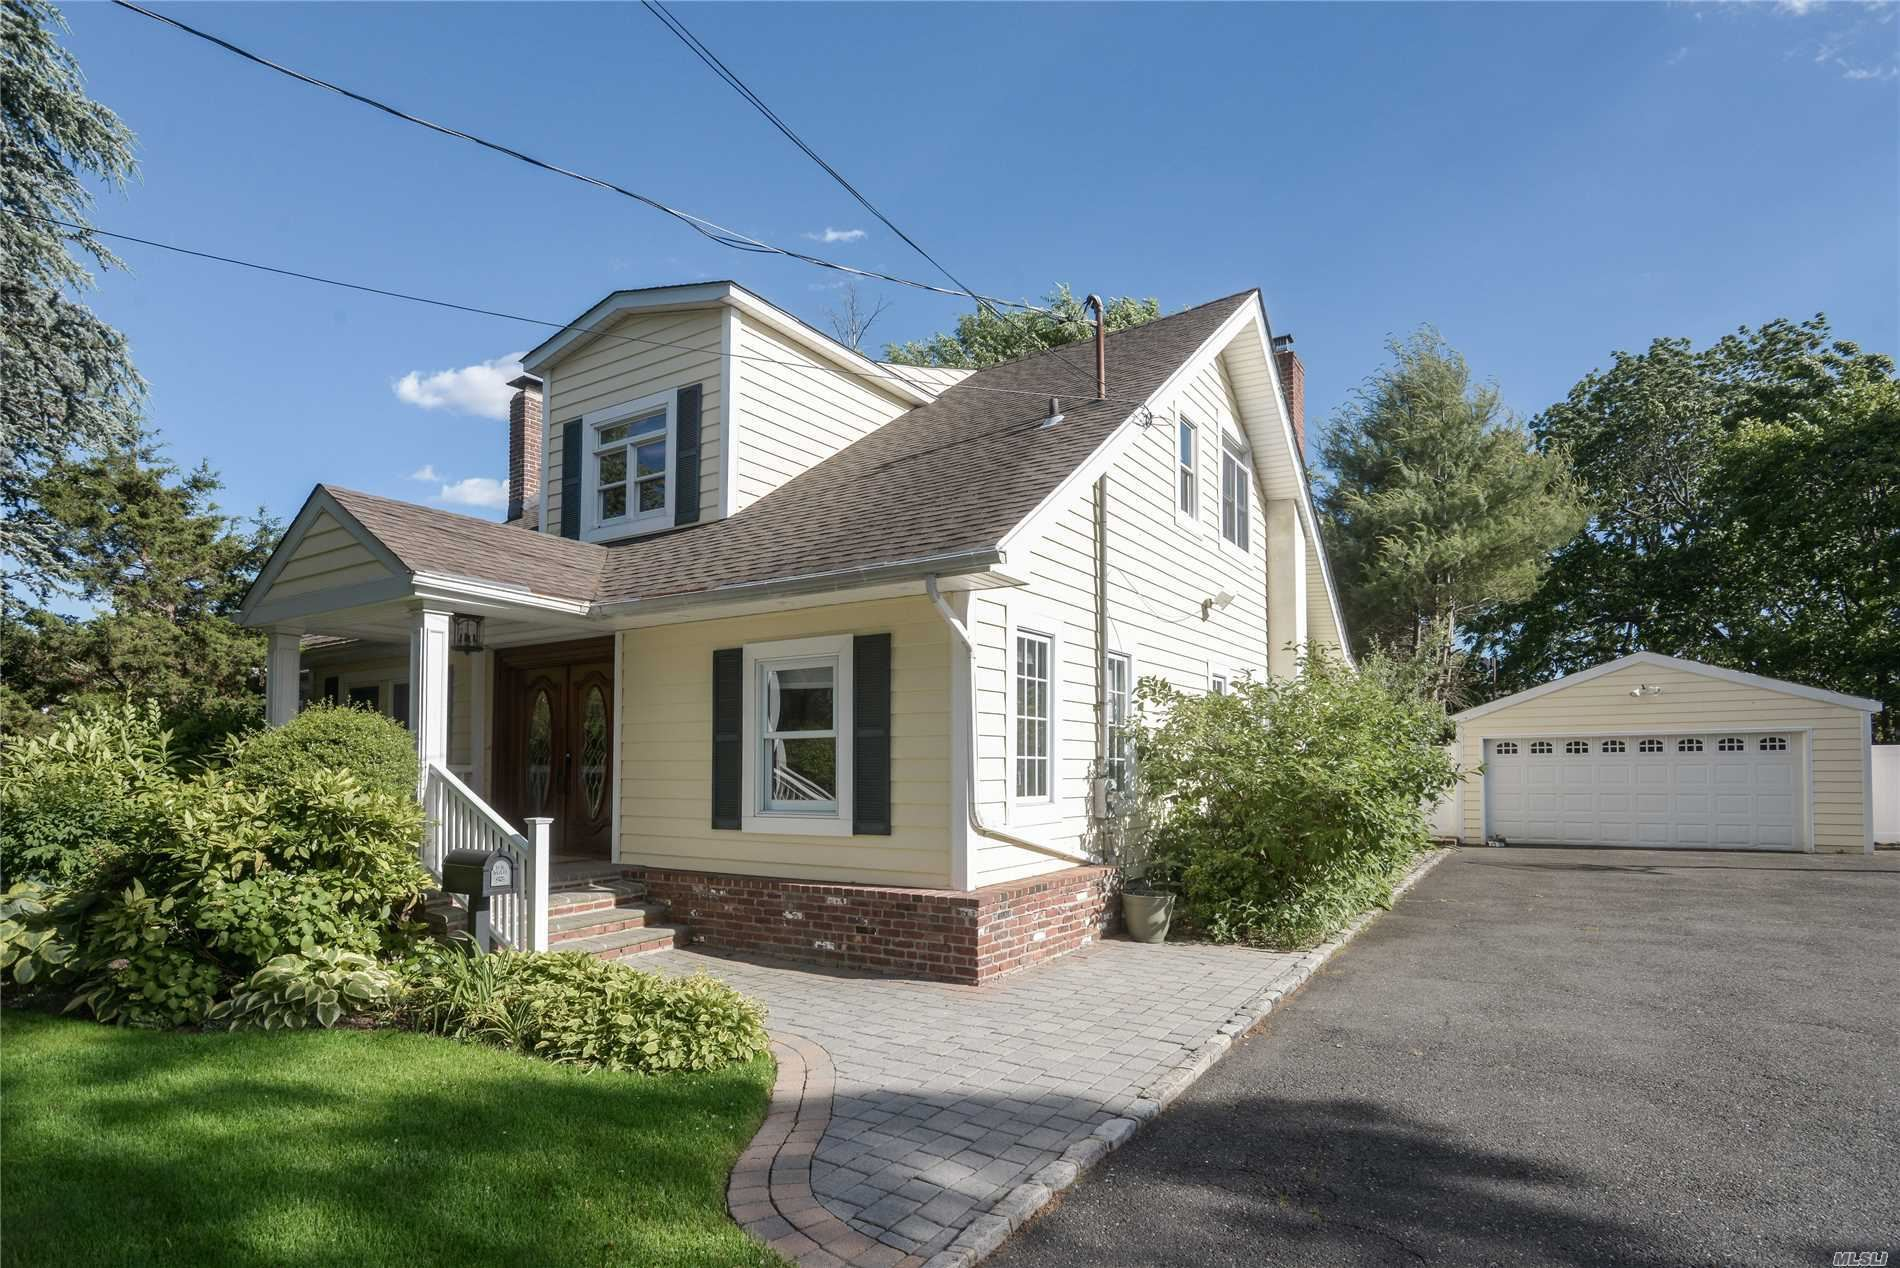 67 Johnson Place, Woodmere, NY 11598 - MLS#: 3040725